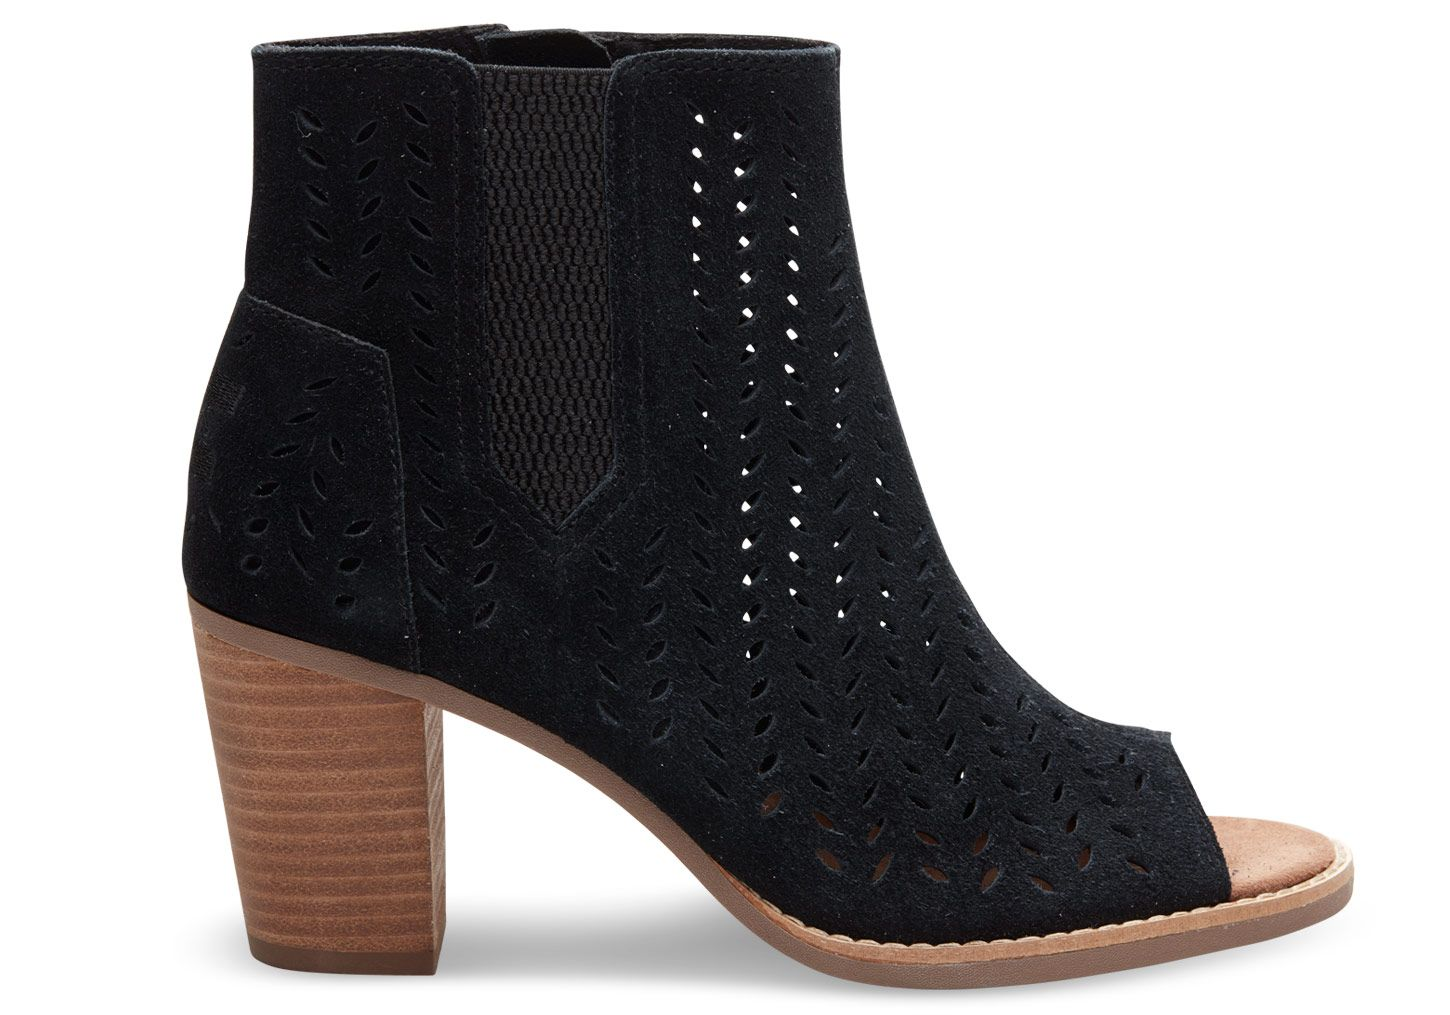 c4b1ff25803 Need size 7 Black or Gray Suede Perforated Leaf Women s Majorca Peep ...